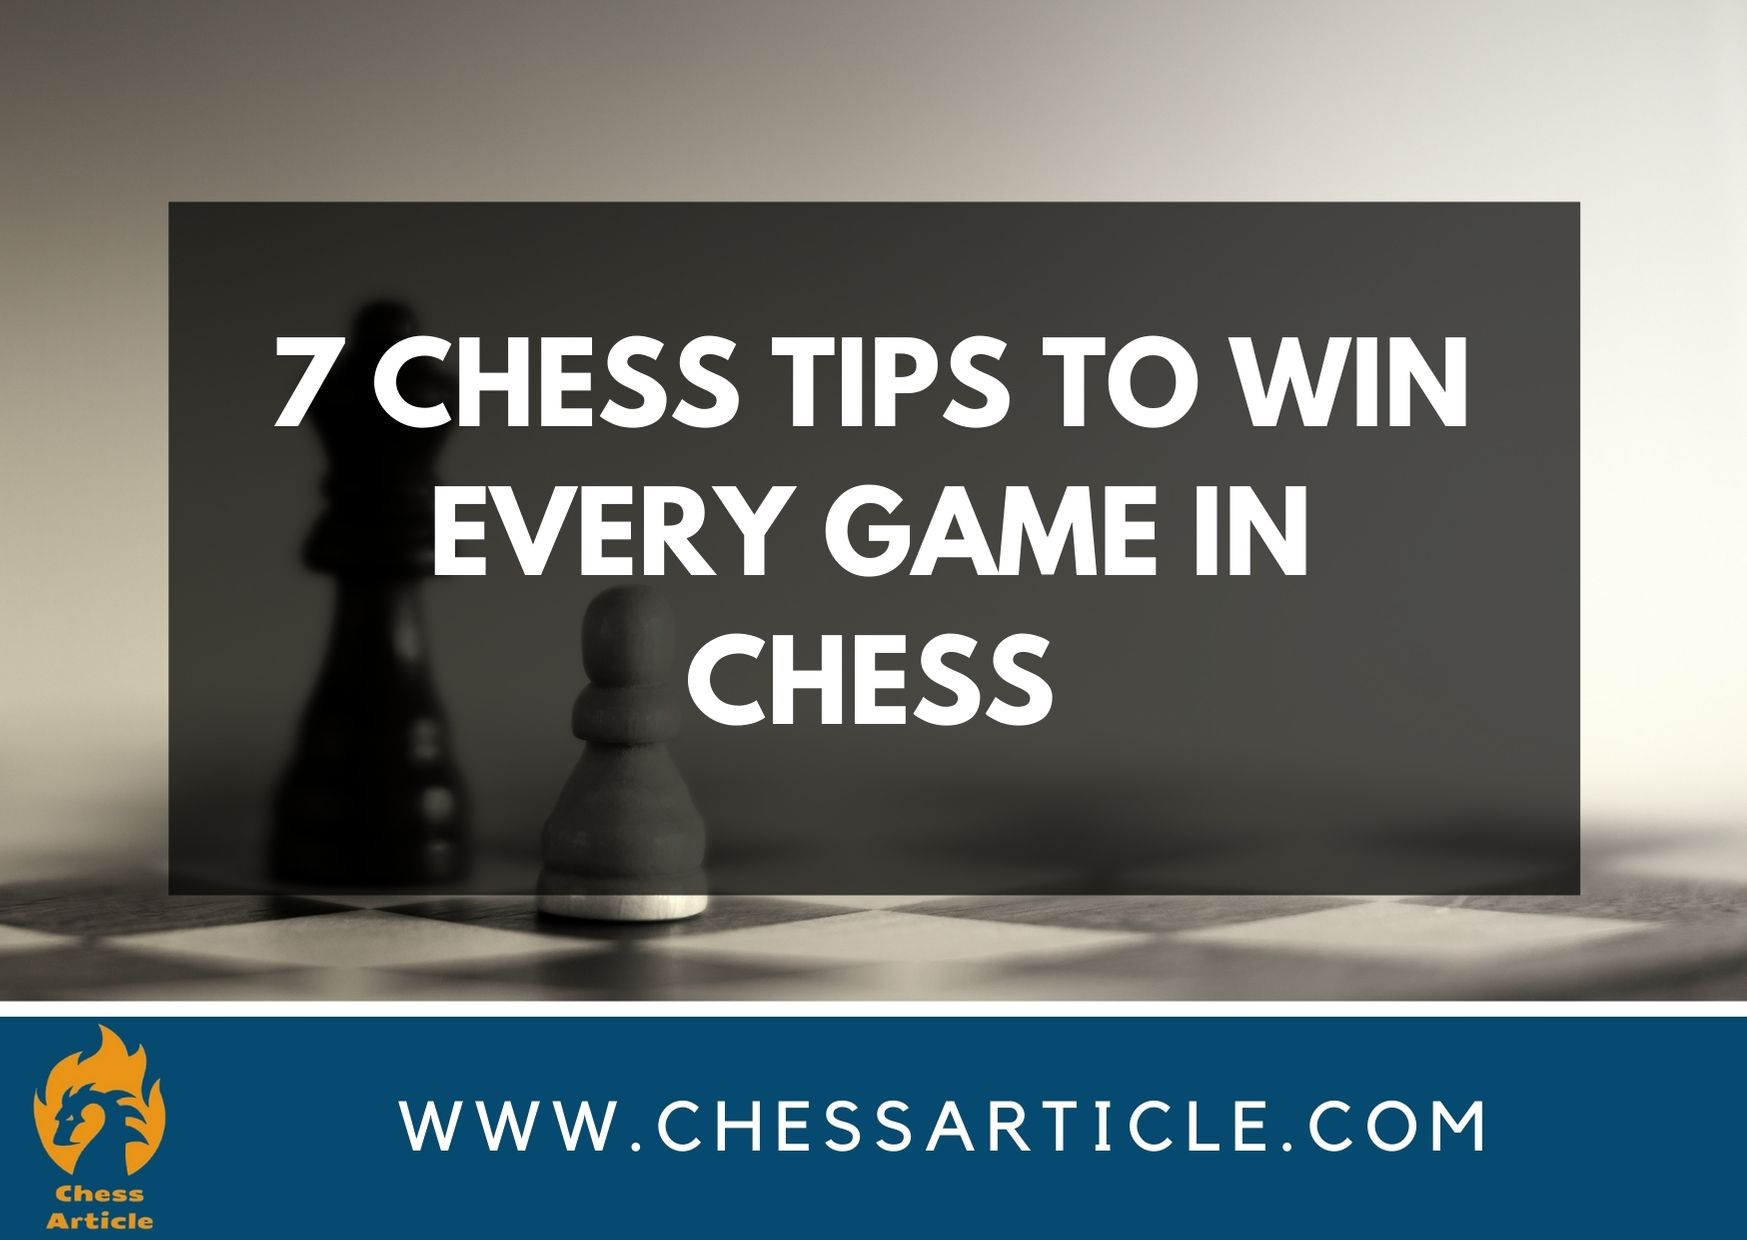 7 chess tips to win every game you play on chess.com